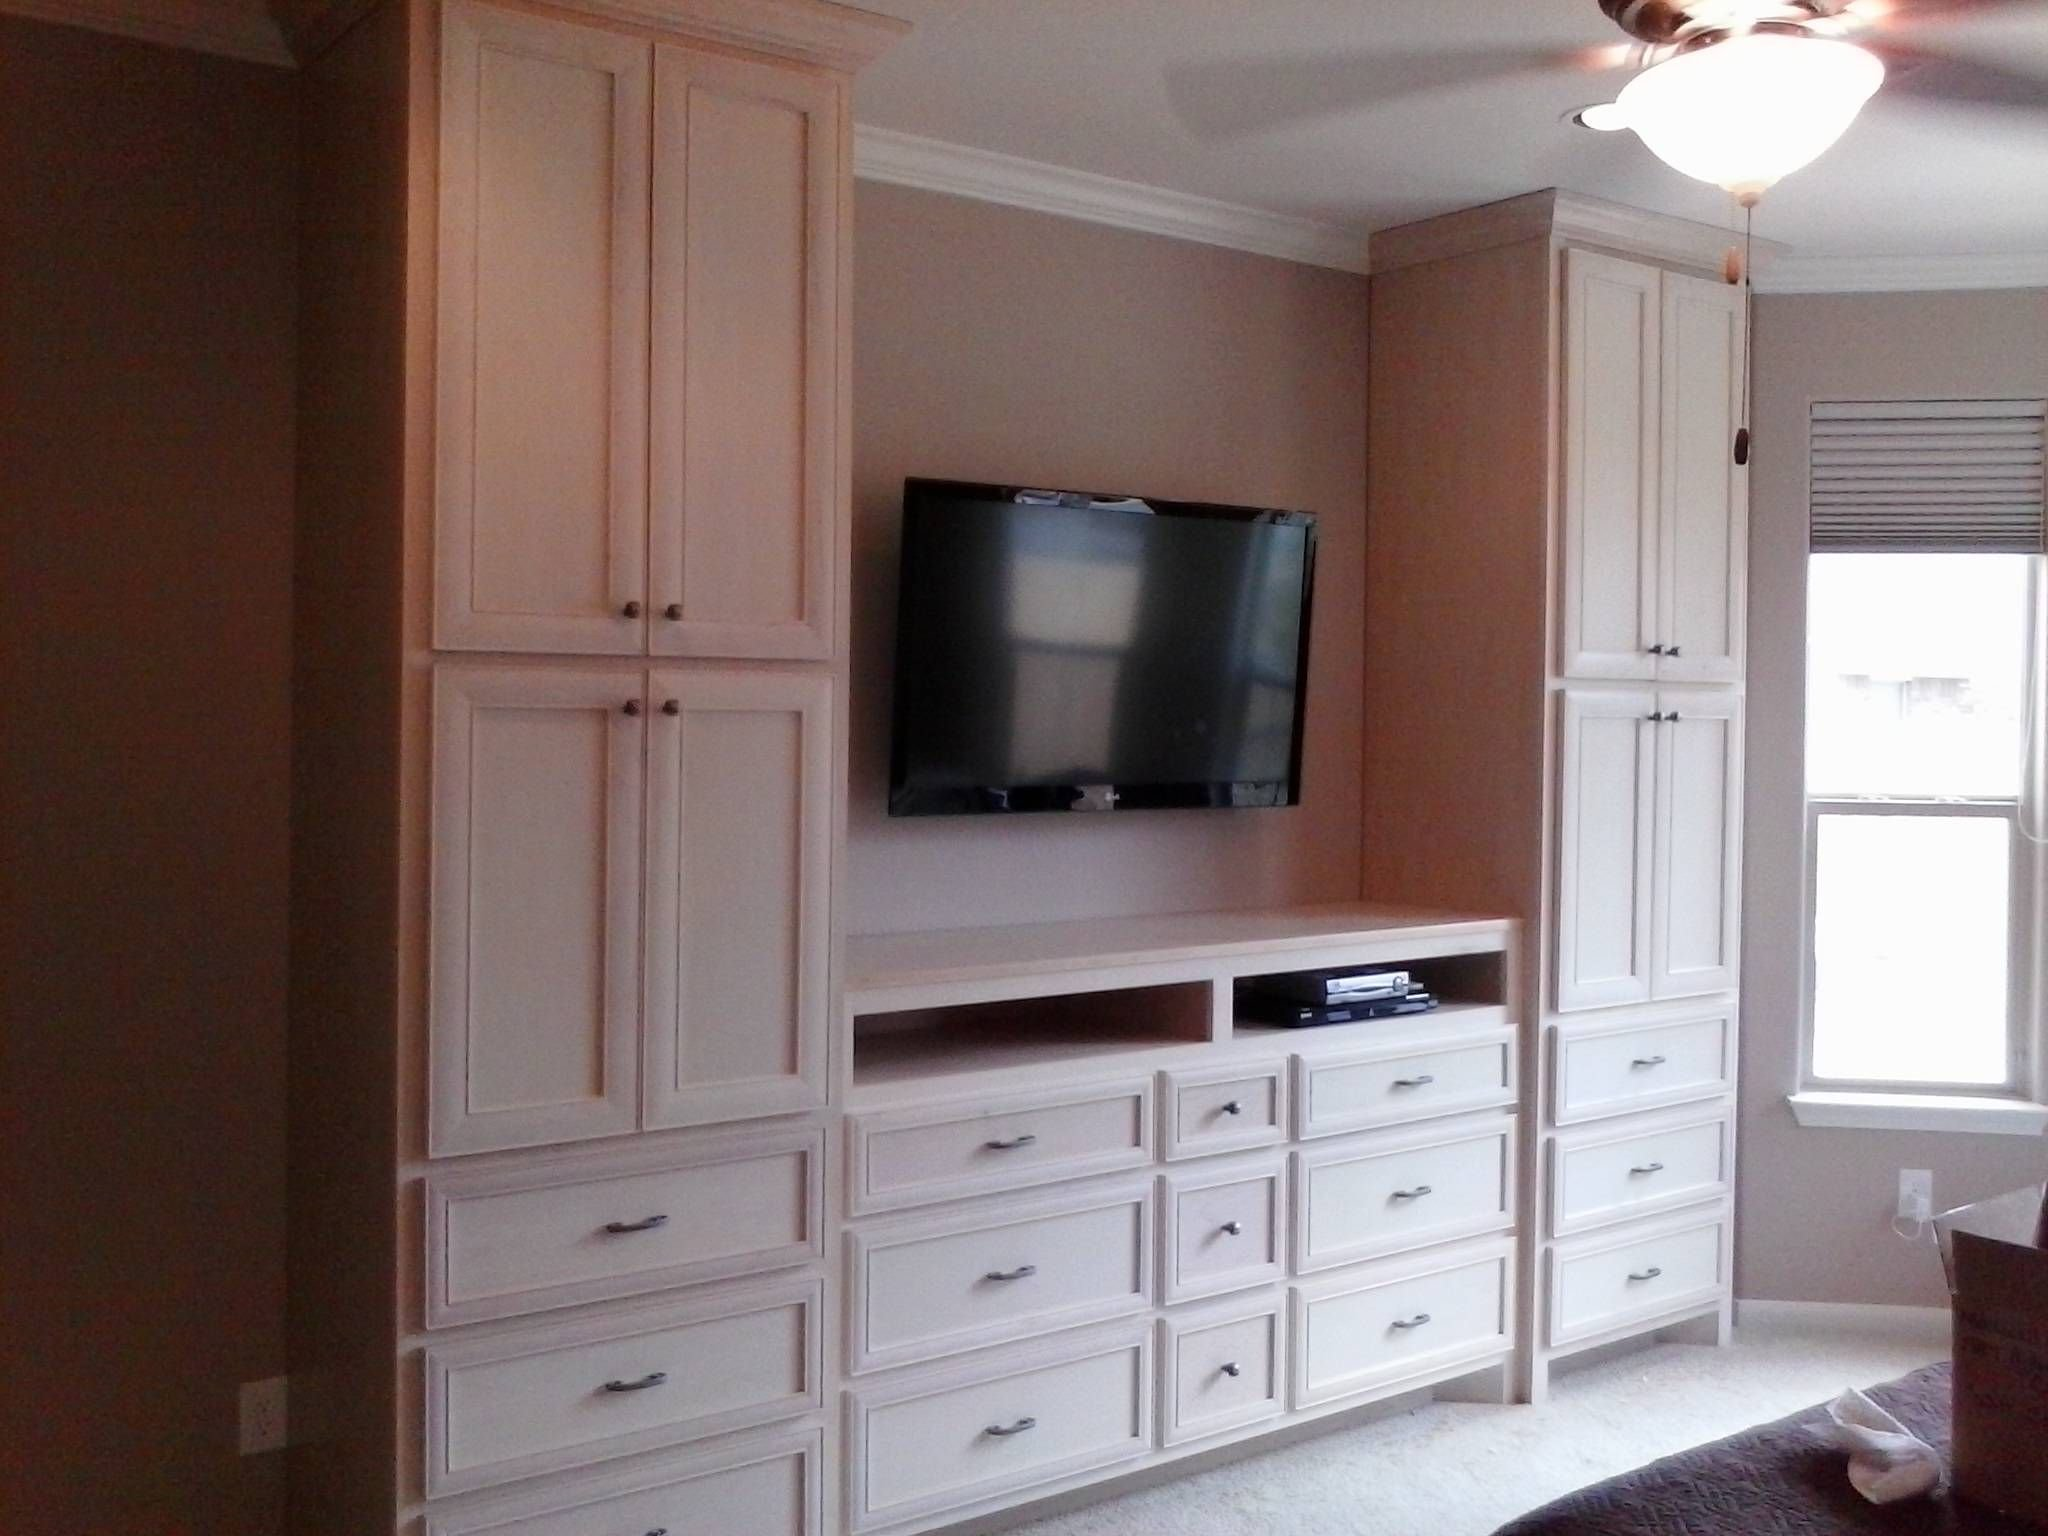 Best Image Of Bedroom Wall Units With Drawers And Tv Decor I With Pictures